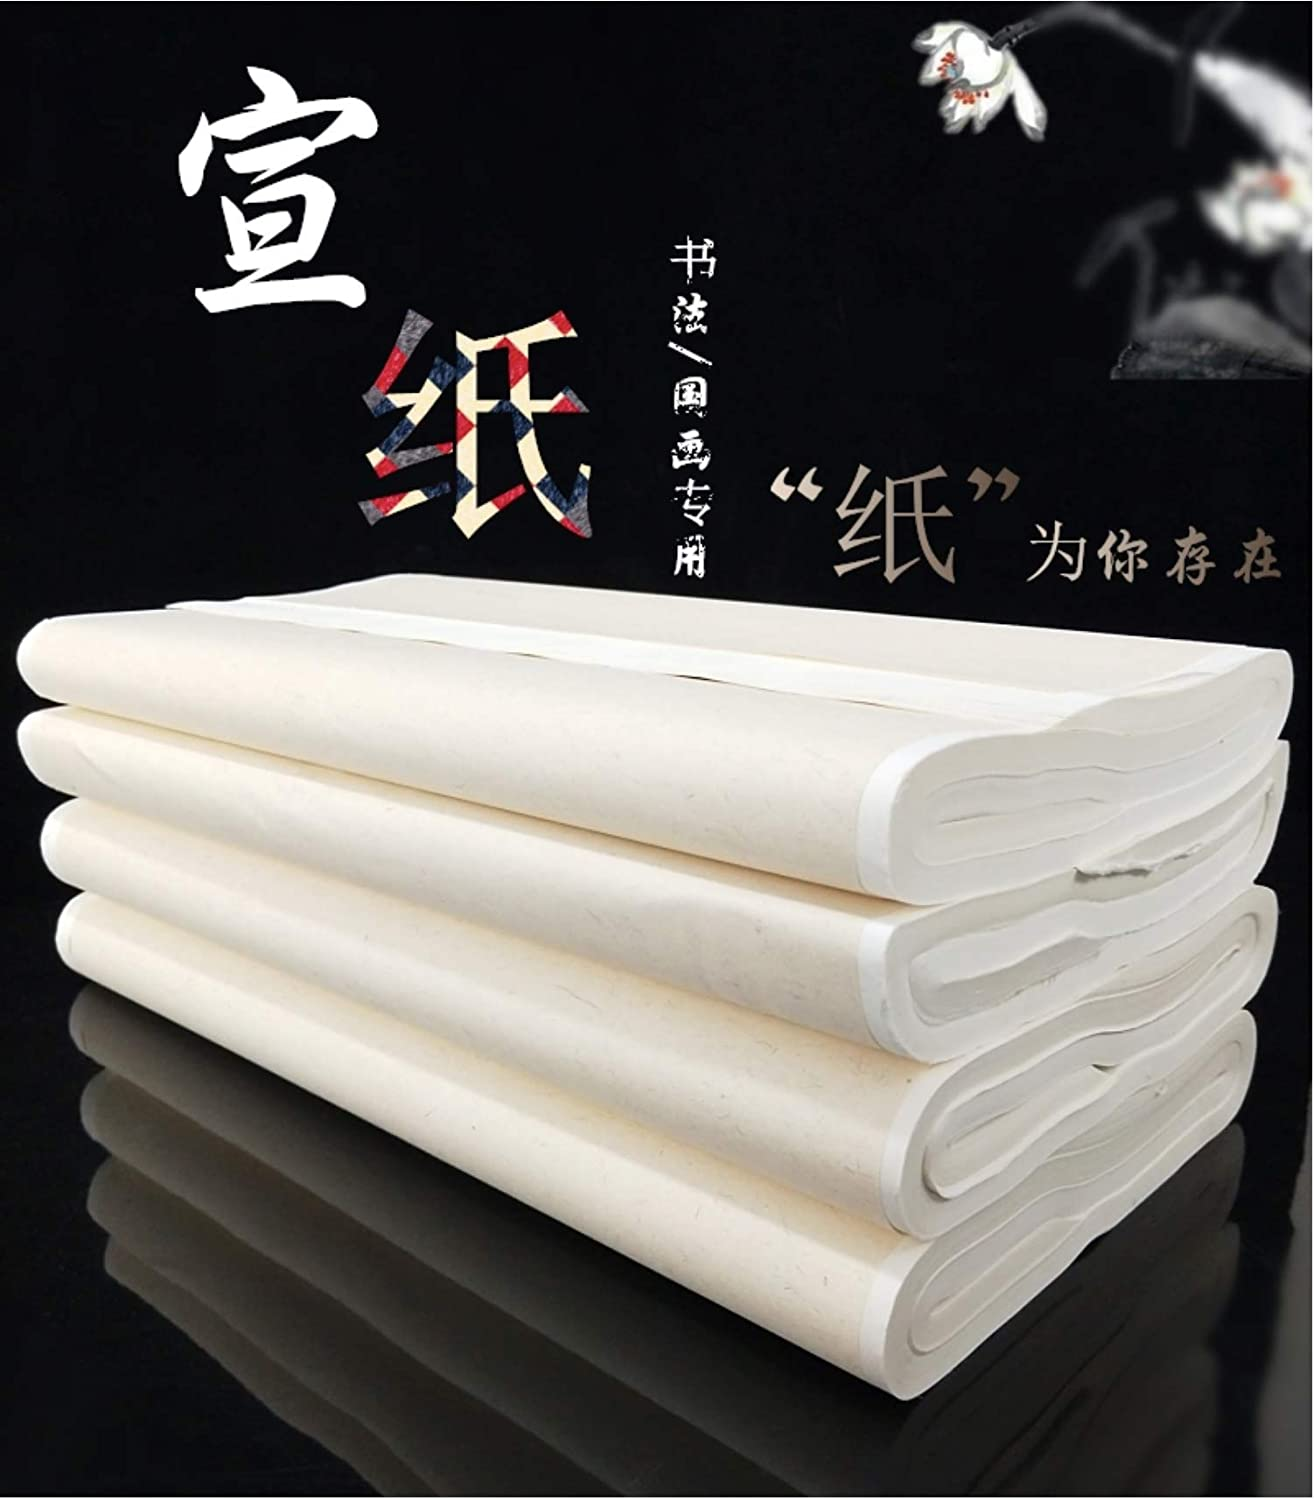 MEGREZ Chinese Japanese Calligraphy Practice Writing Sumi Drawing Xuan Rice Paper Thickening Without Grids 100 Sheets/Set - 34 x 68 cm (13.38 x 27.77 inch), Shu (Ripe) Xuan